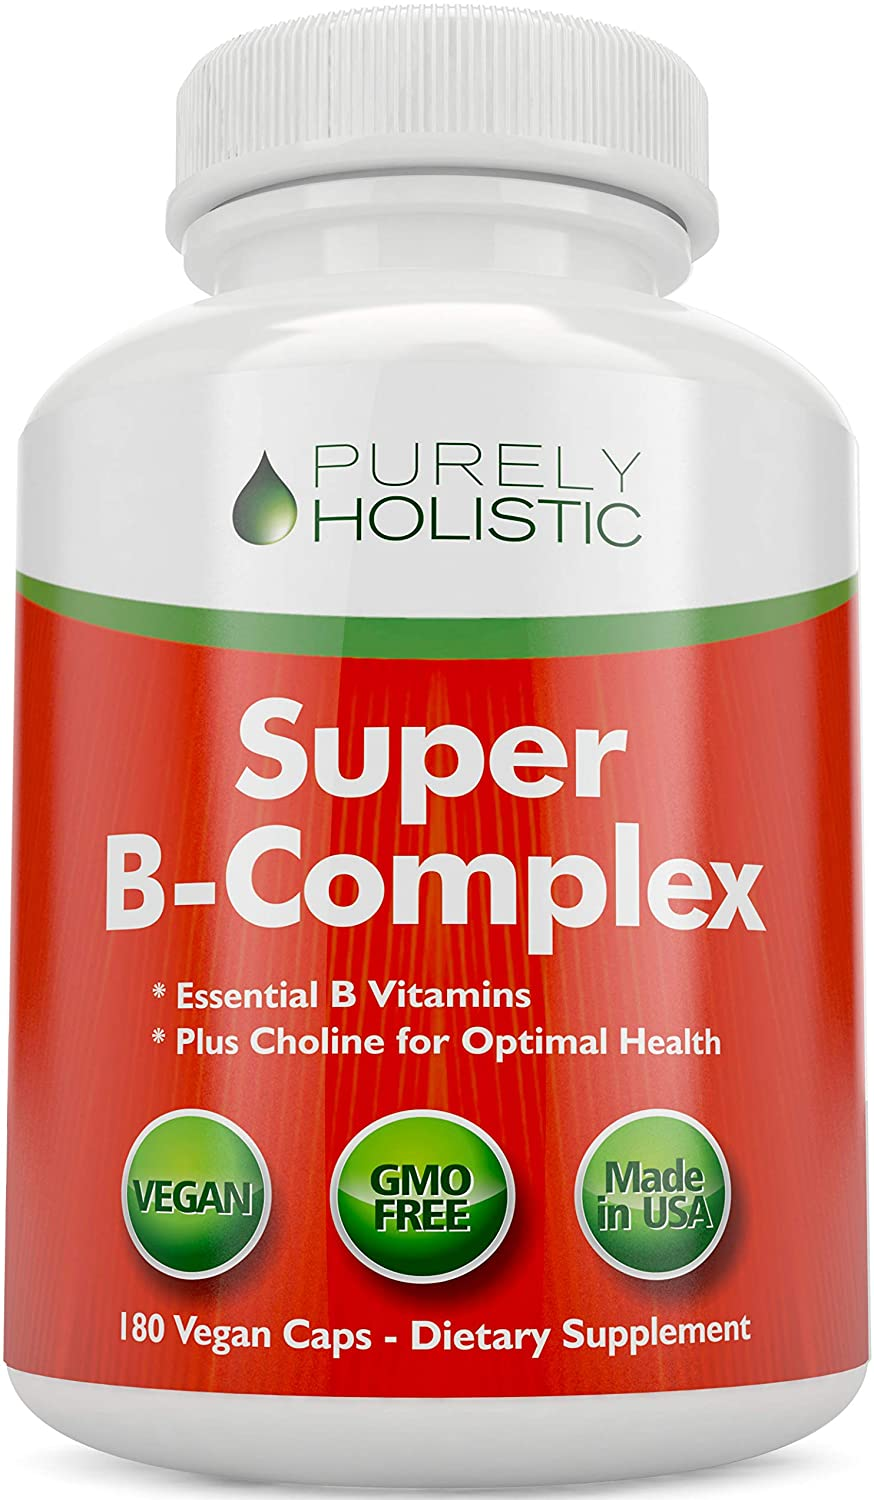 Vitamin B Complex - 8 Super B Complex Vitamins with Choline & Inositol, Vitamins B1, B2, B3, B5, B6, B8, B9 & B12 - B100 Complex - 180 Vegan Capsules - 6 Month Supply - Made in The USA